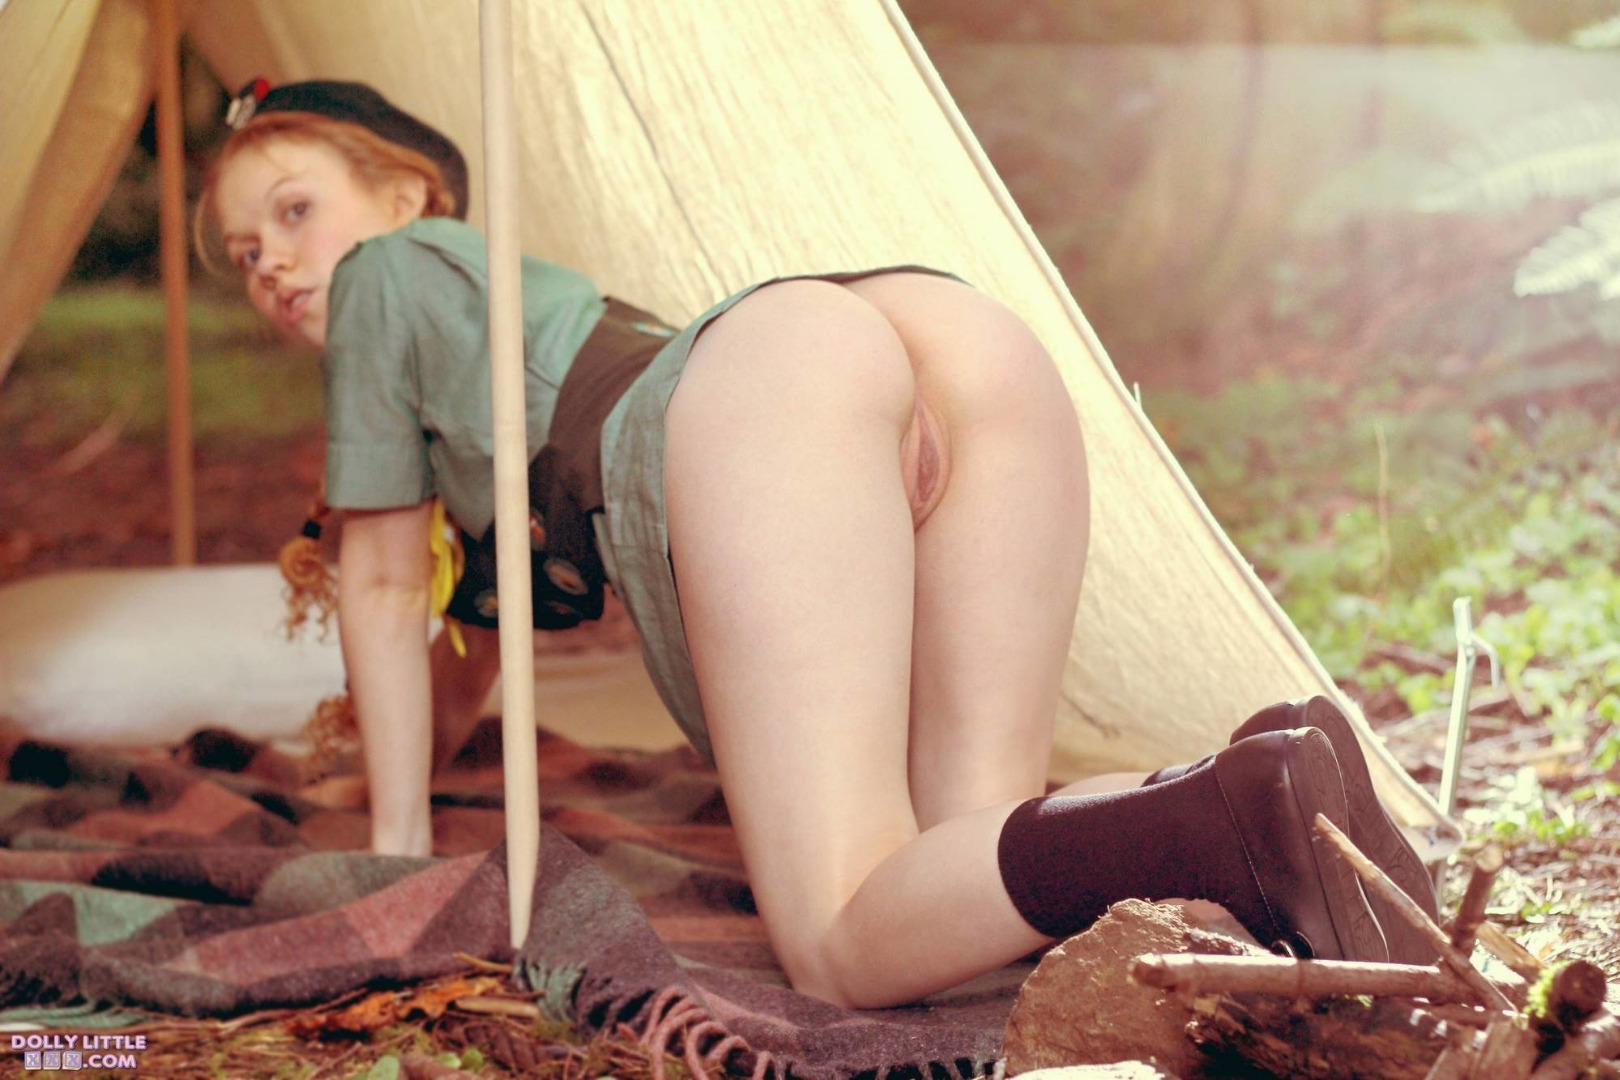 hot wife laughs at husbands tiny dick and cuckolds him #ageplay #ass #bentover #comefuckme #ddlg #ginger #gingerpuss #mycumalloverthat #onallfours #pussy #redhead #redhead #shaved #teen #thubsucker #thumbsucking